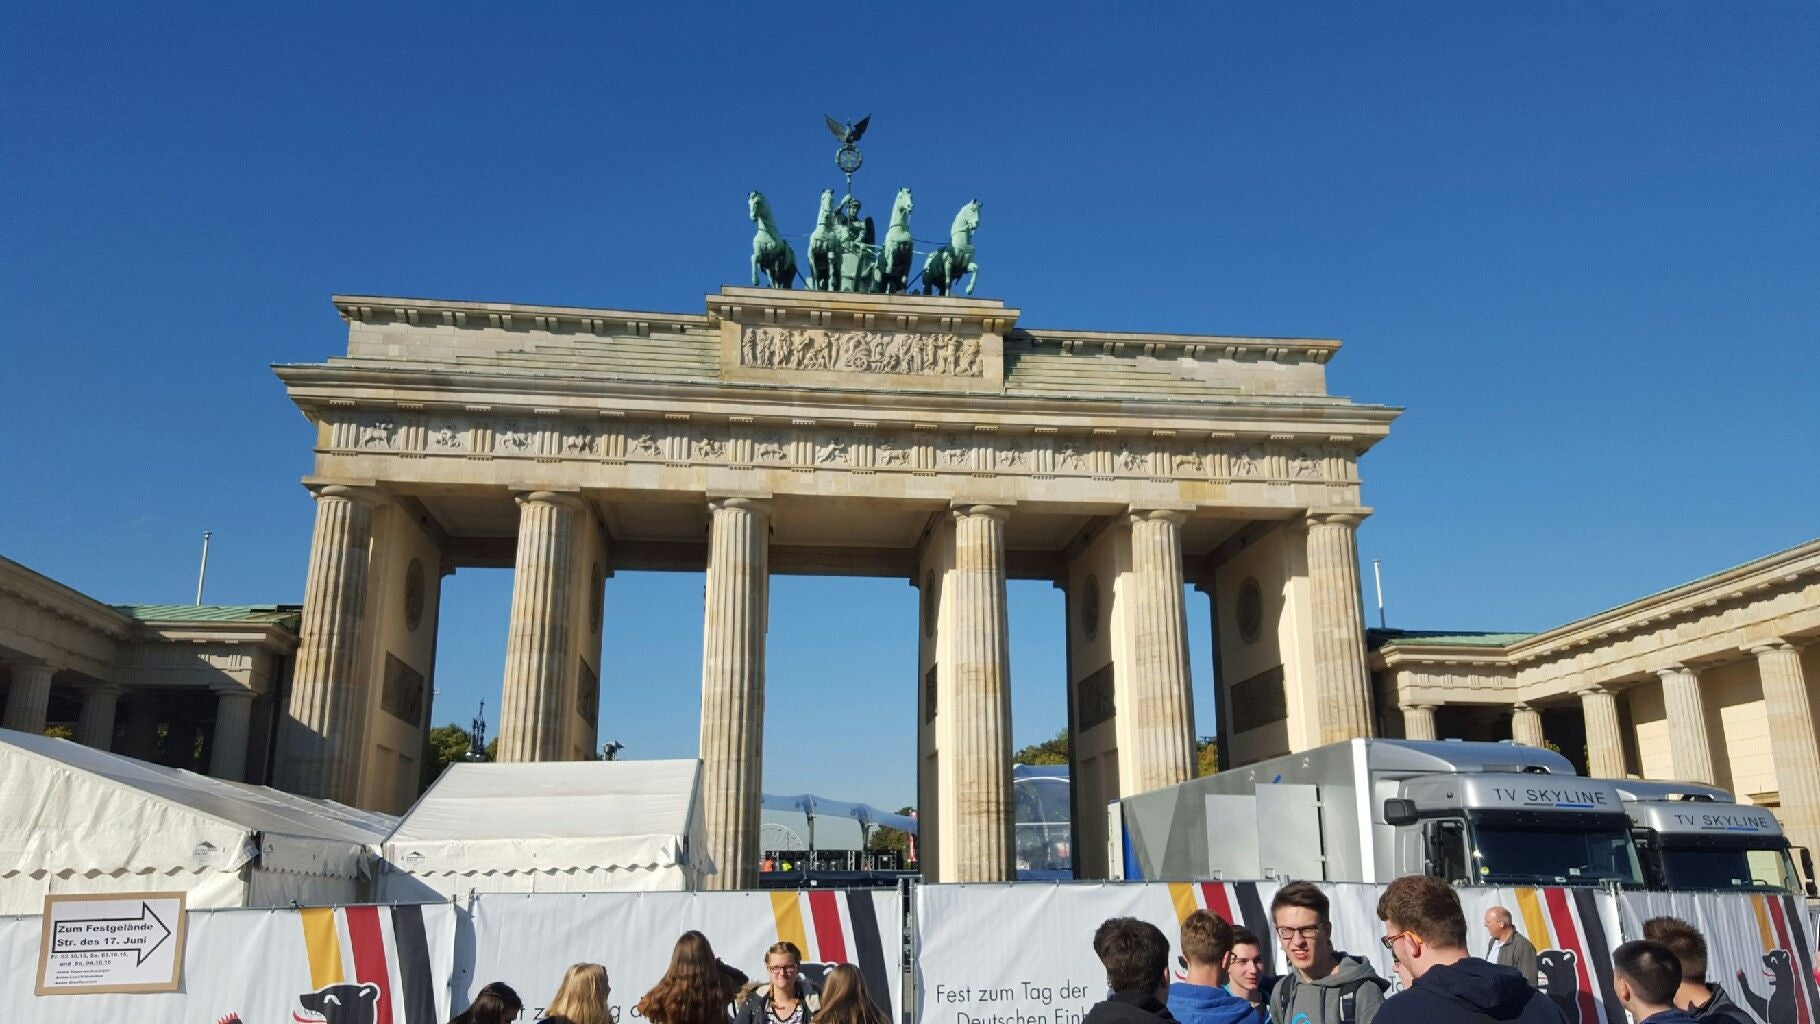 Tourism in Brandenburg Gate